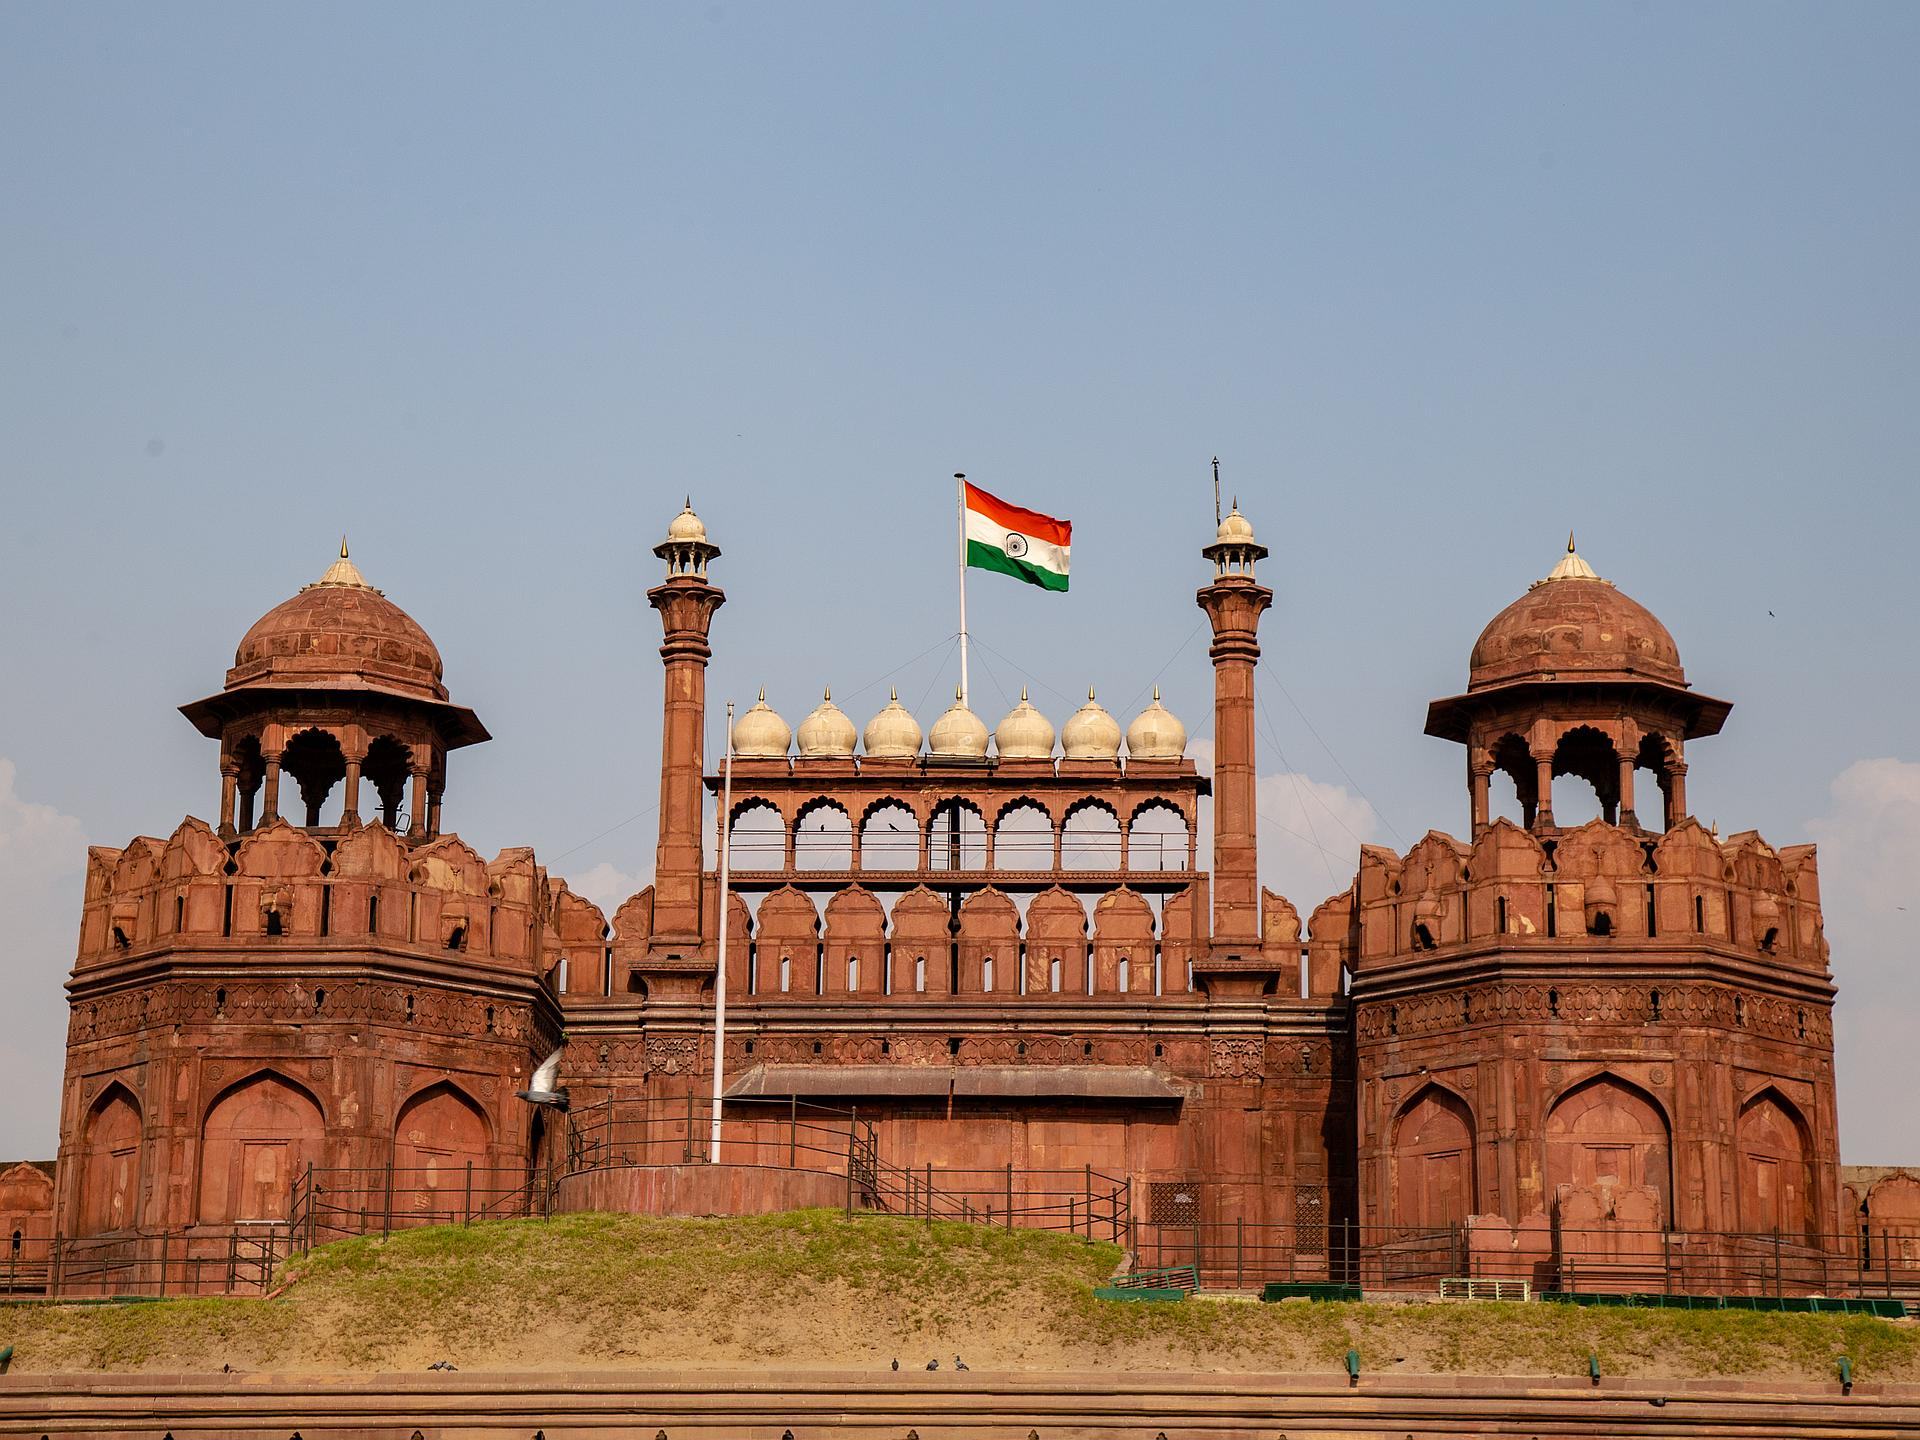 Main entrance to the Red Fort in New Delhi